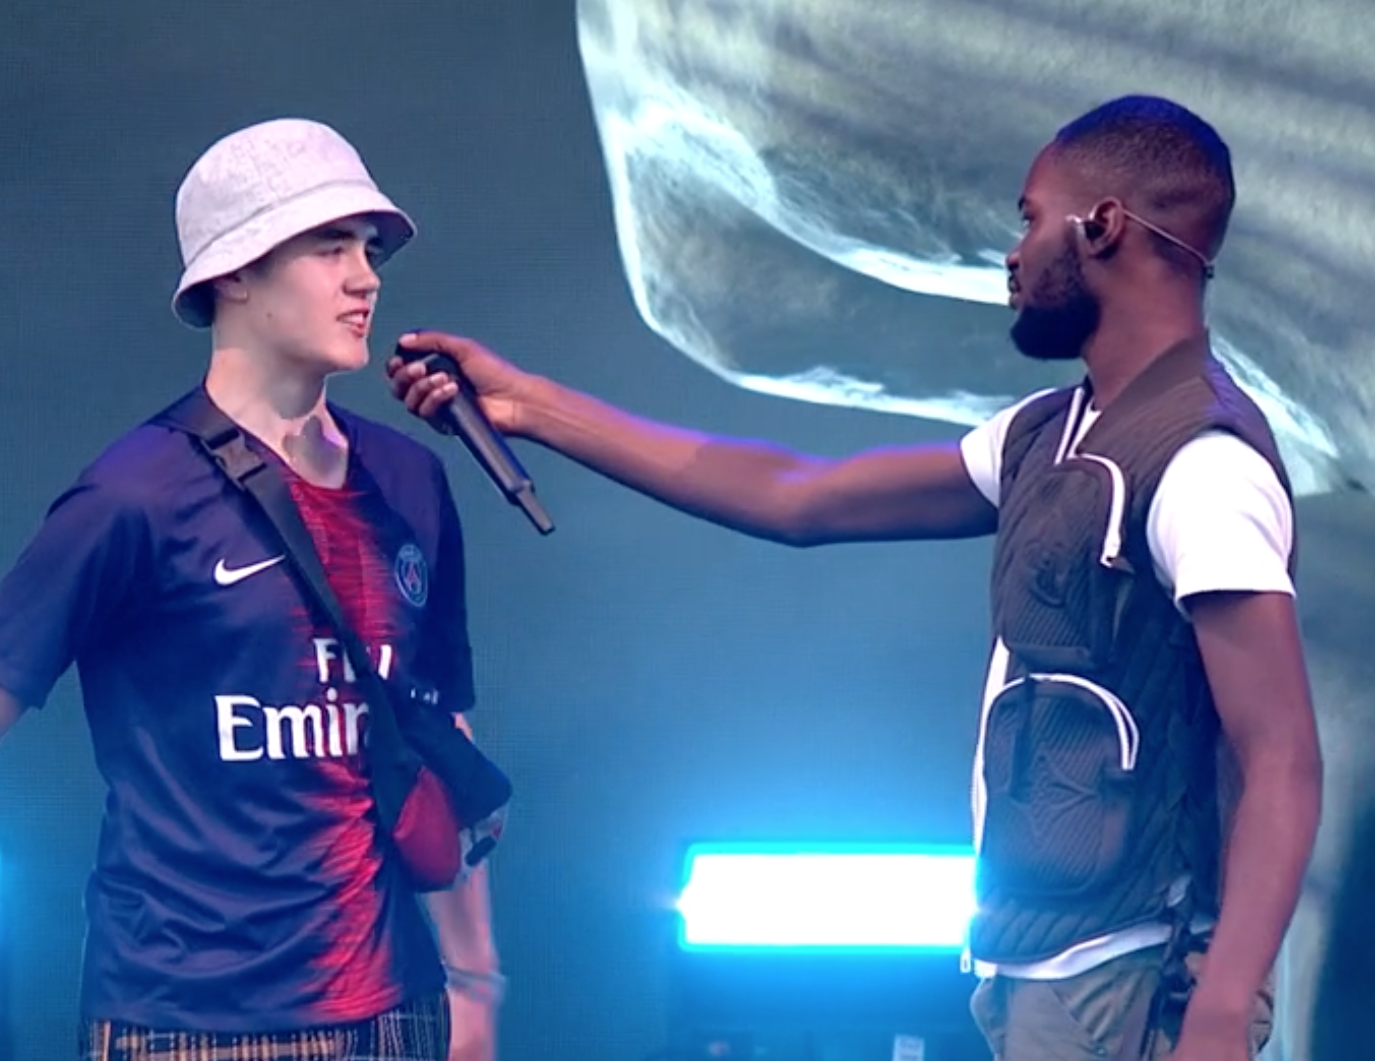 Glastonbury 2019: Thiago Silva responds to Dave fan who went viral